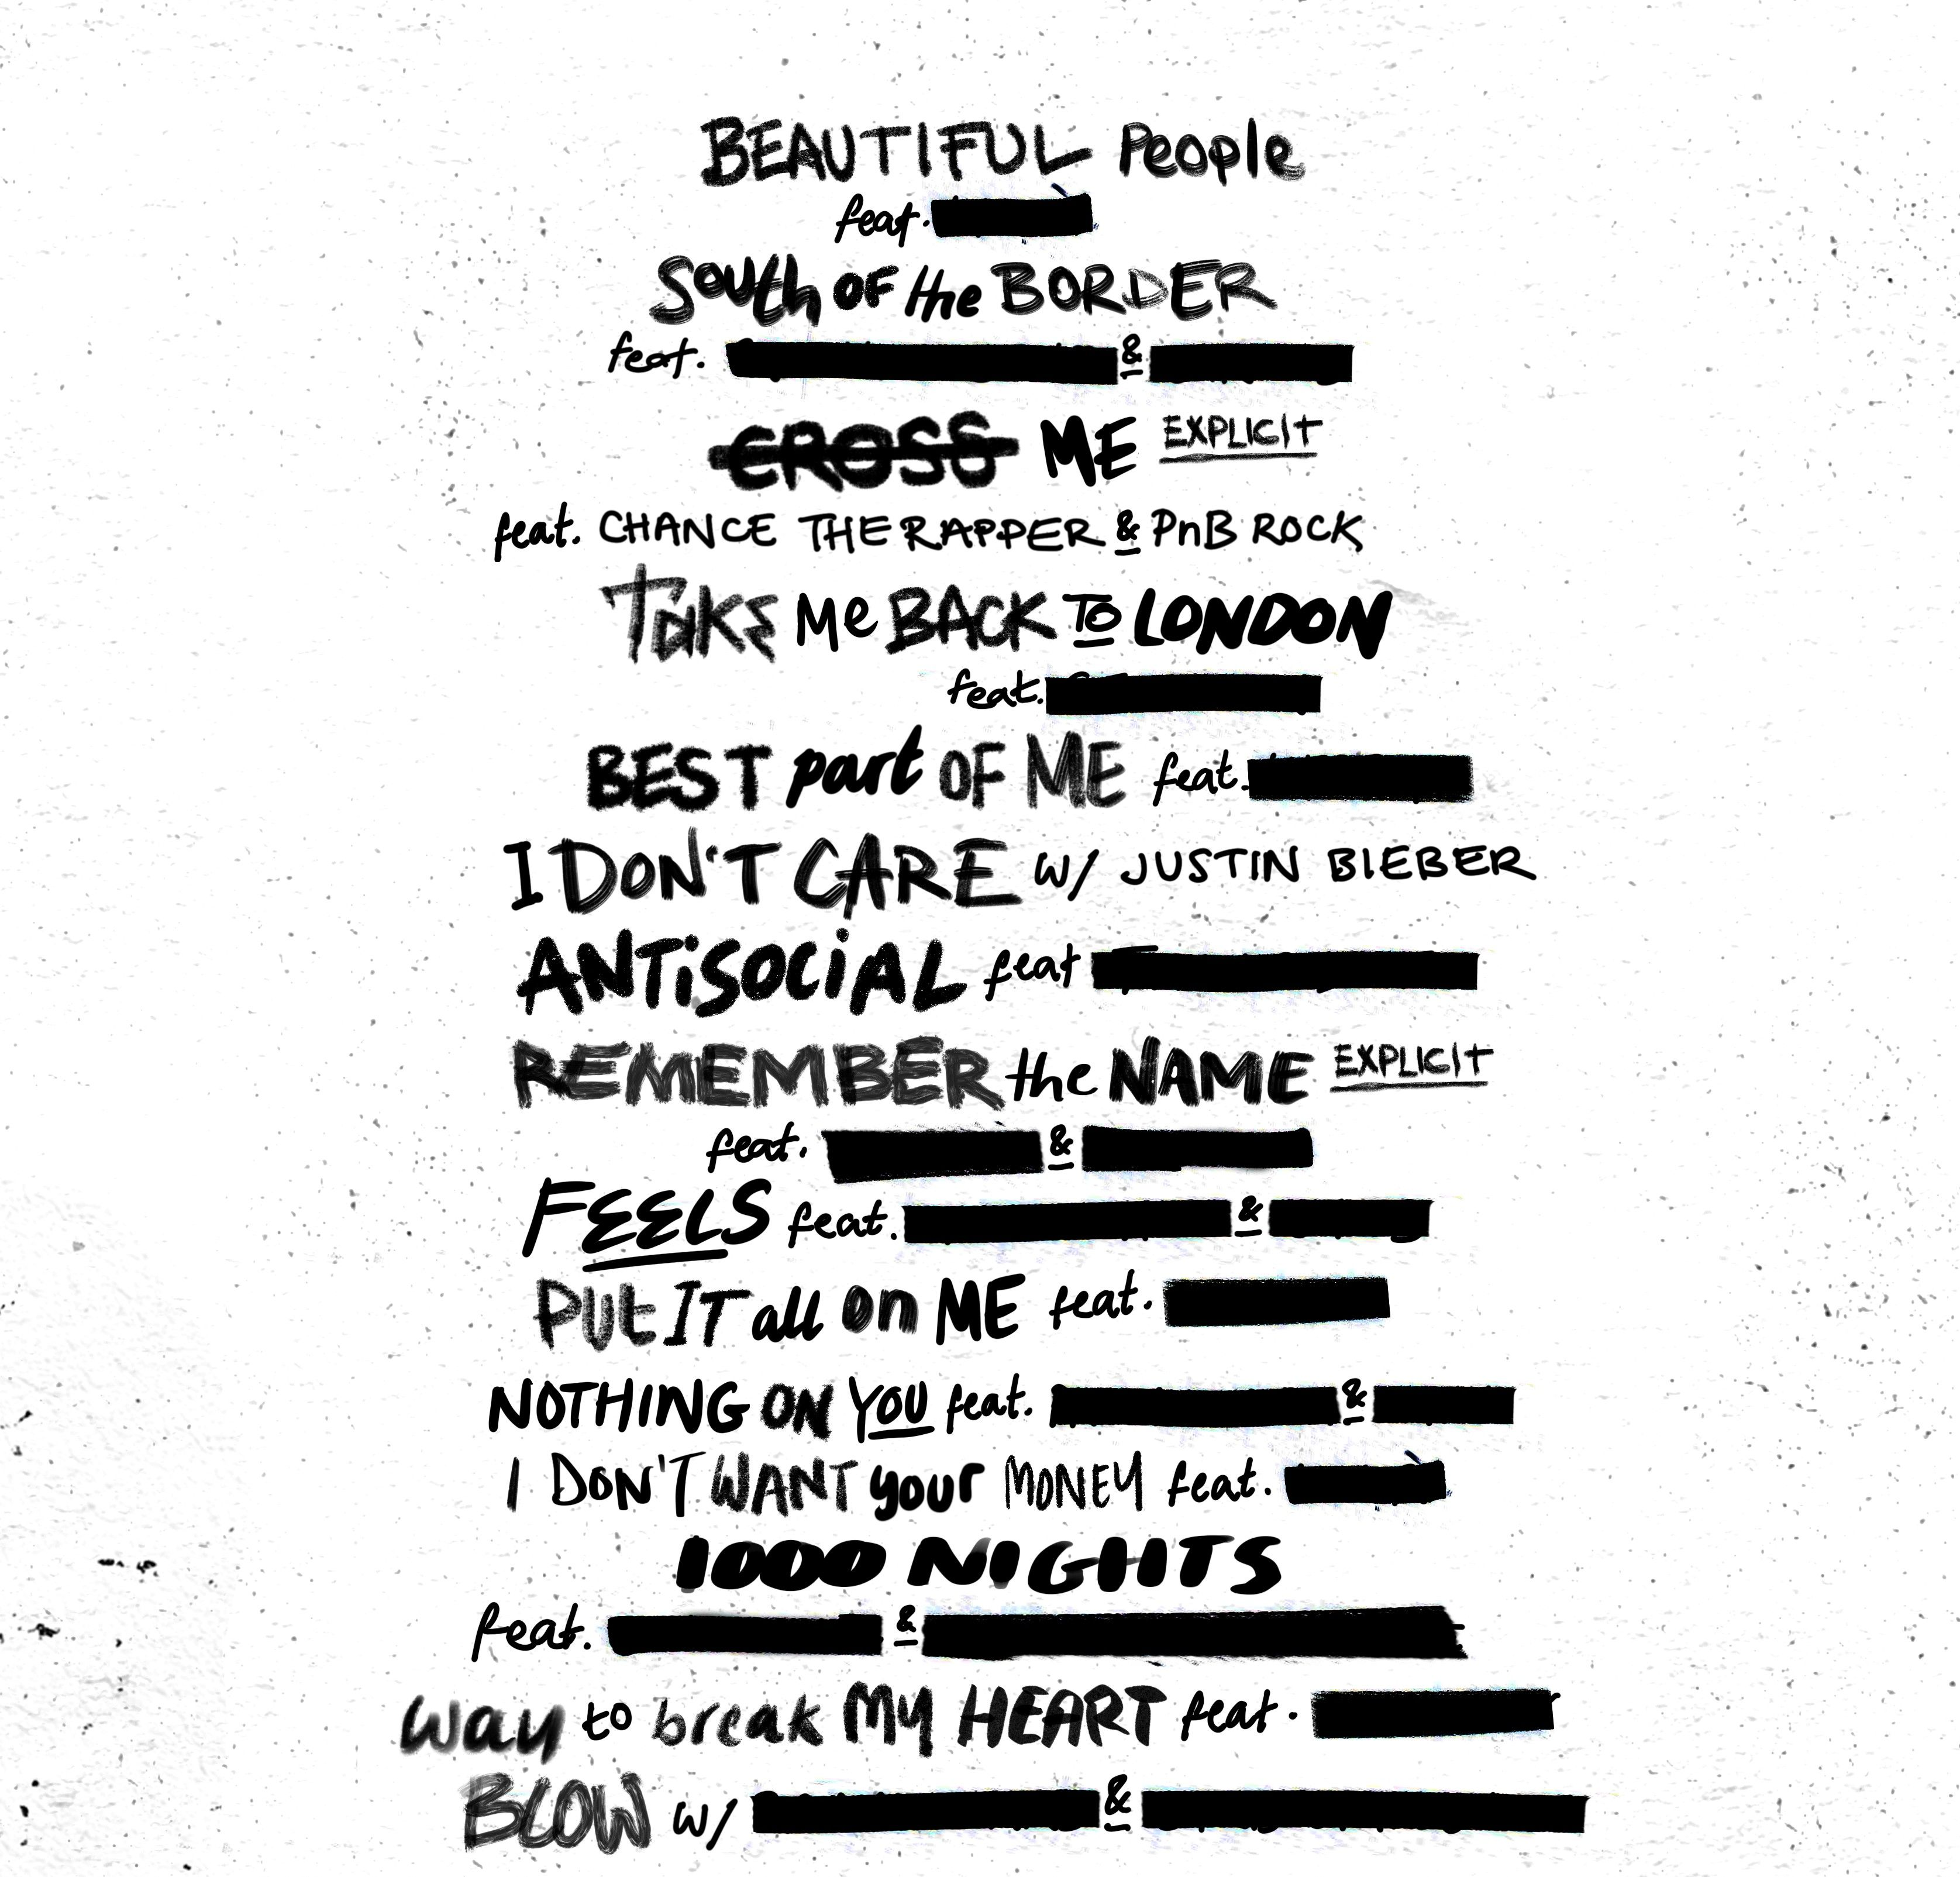 Ed Sheeran is about to drop a brand new album called 'No.6